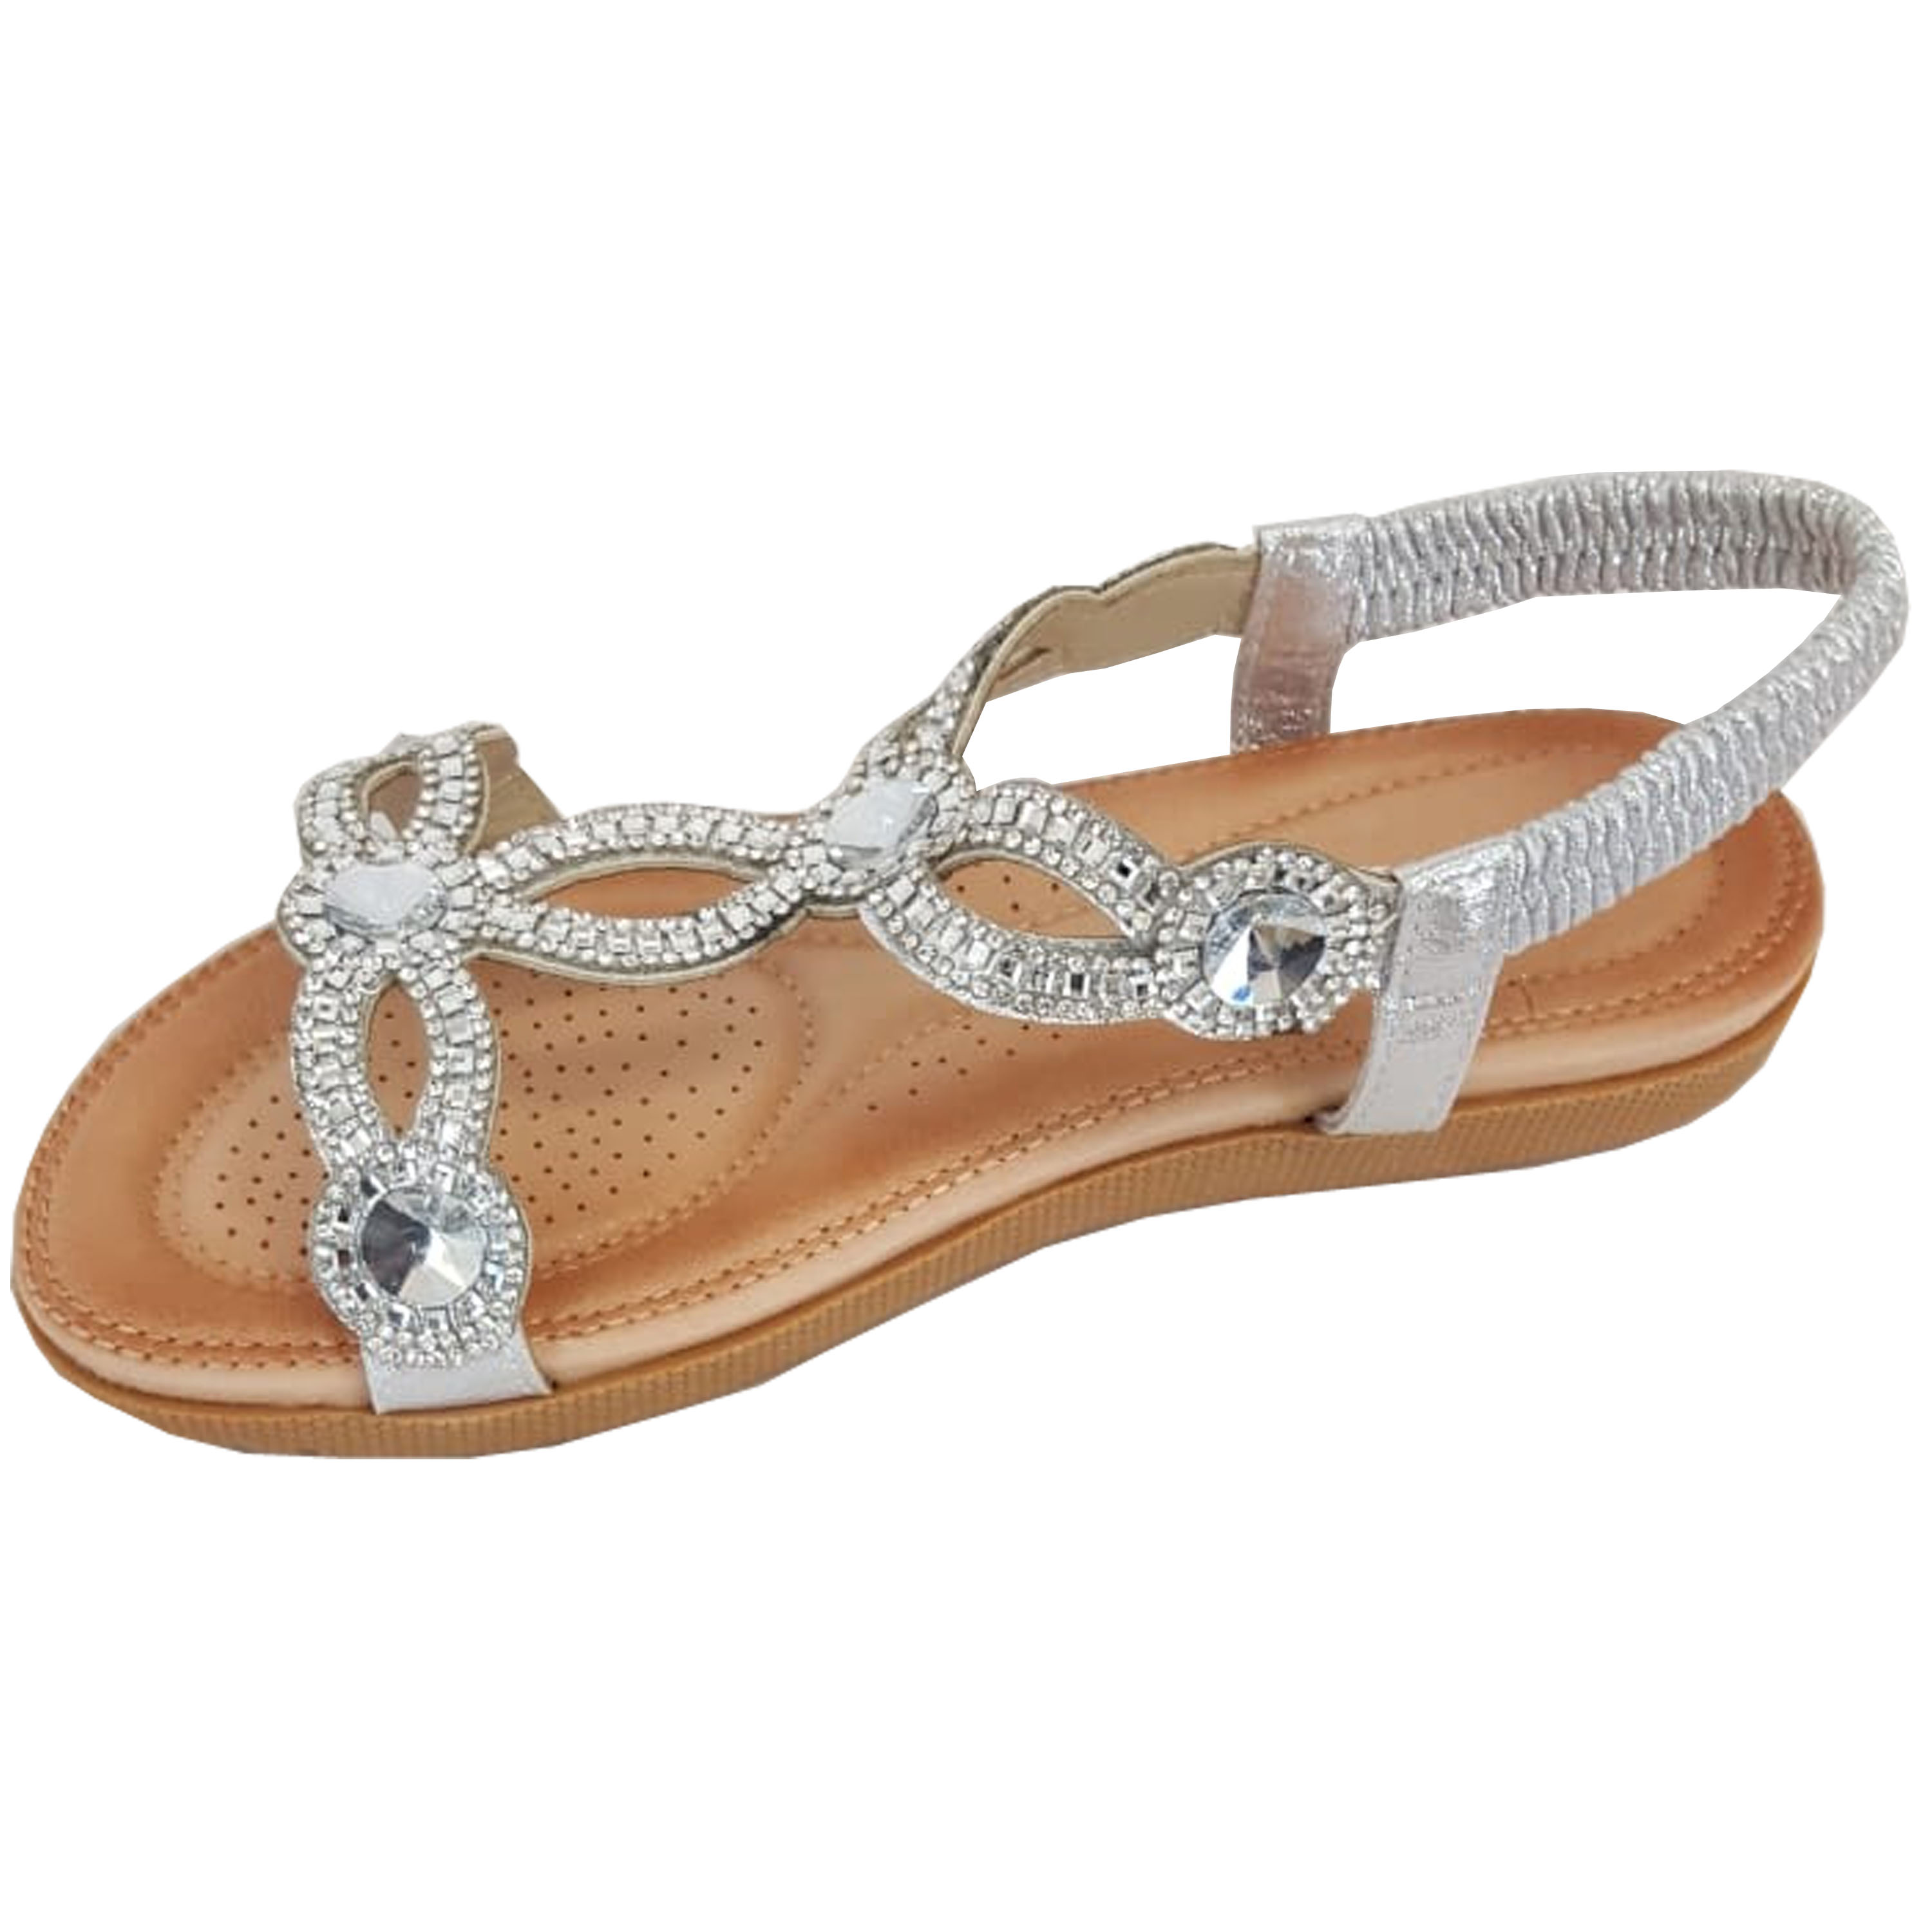 Ladies-Sandals-Womens-Diamante-Sling-Back-Open-Toe-Post-Shoes-Fashion-Summer-New thumbnail 17